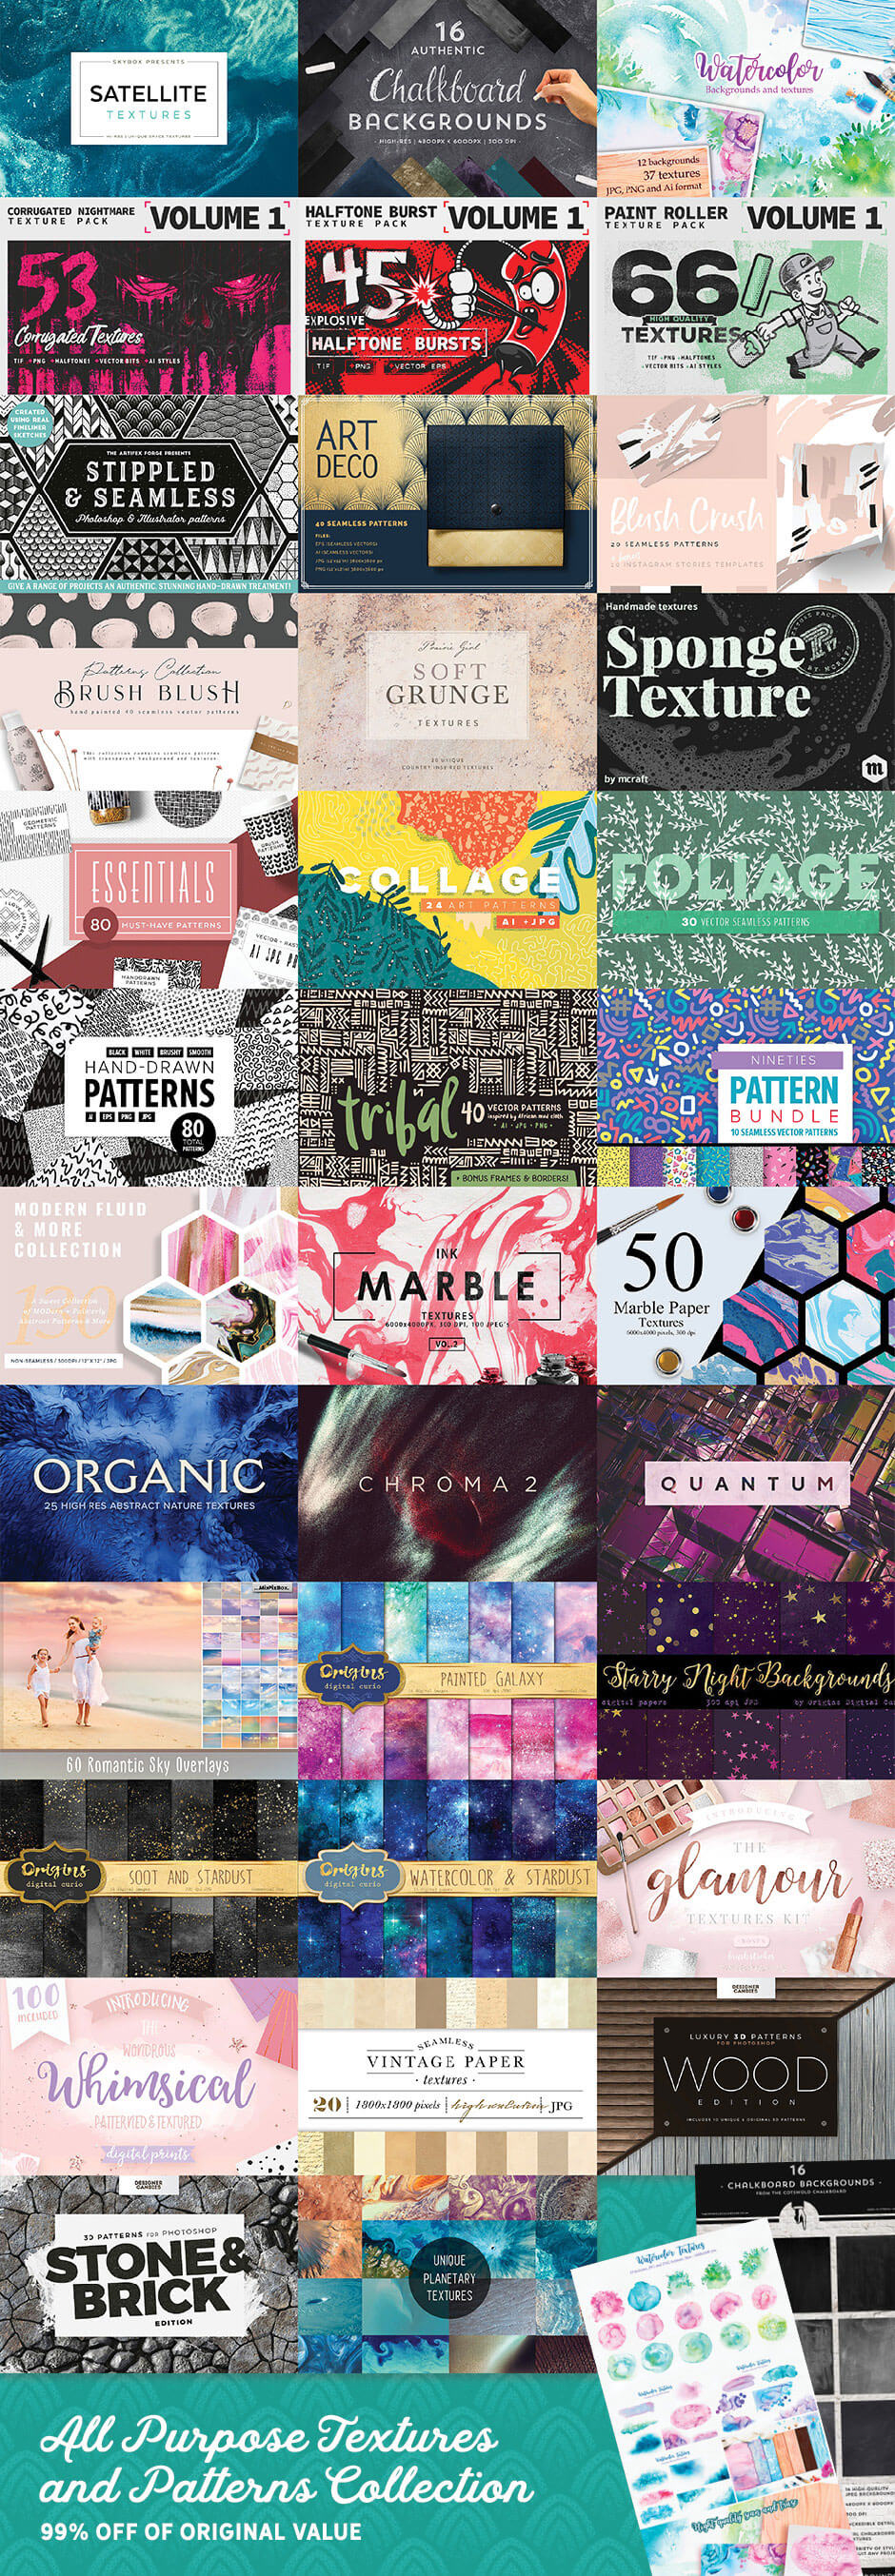 the-all-purpose-textures-and-patterns-collection-grid